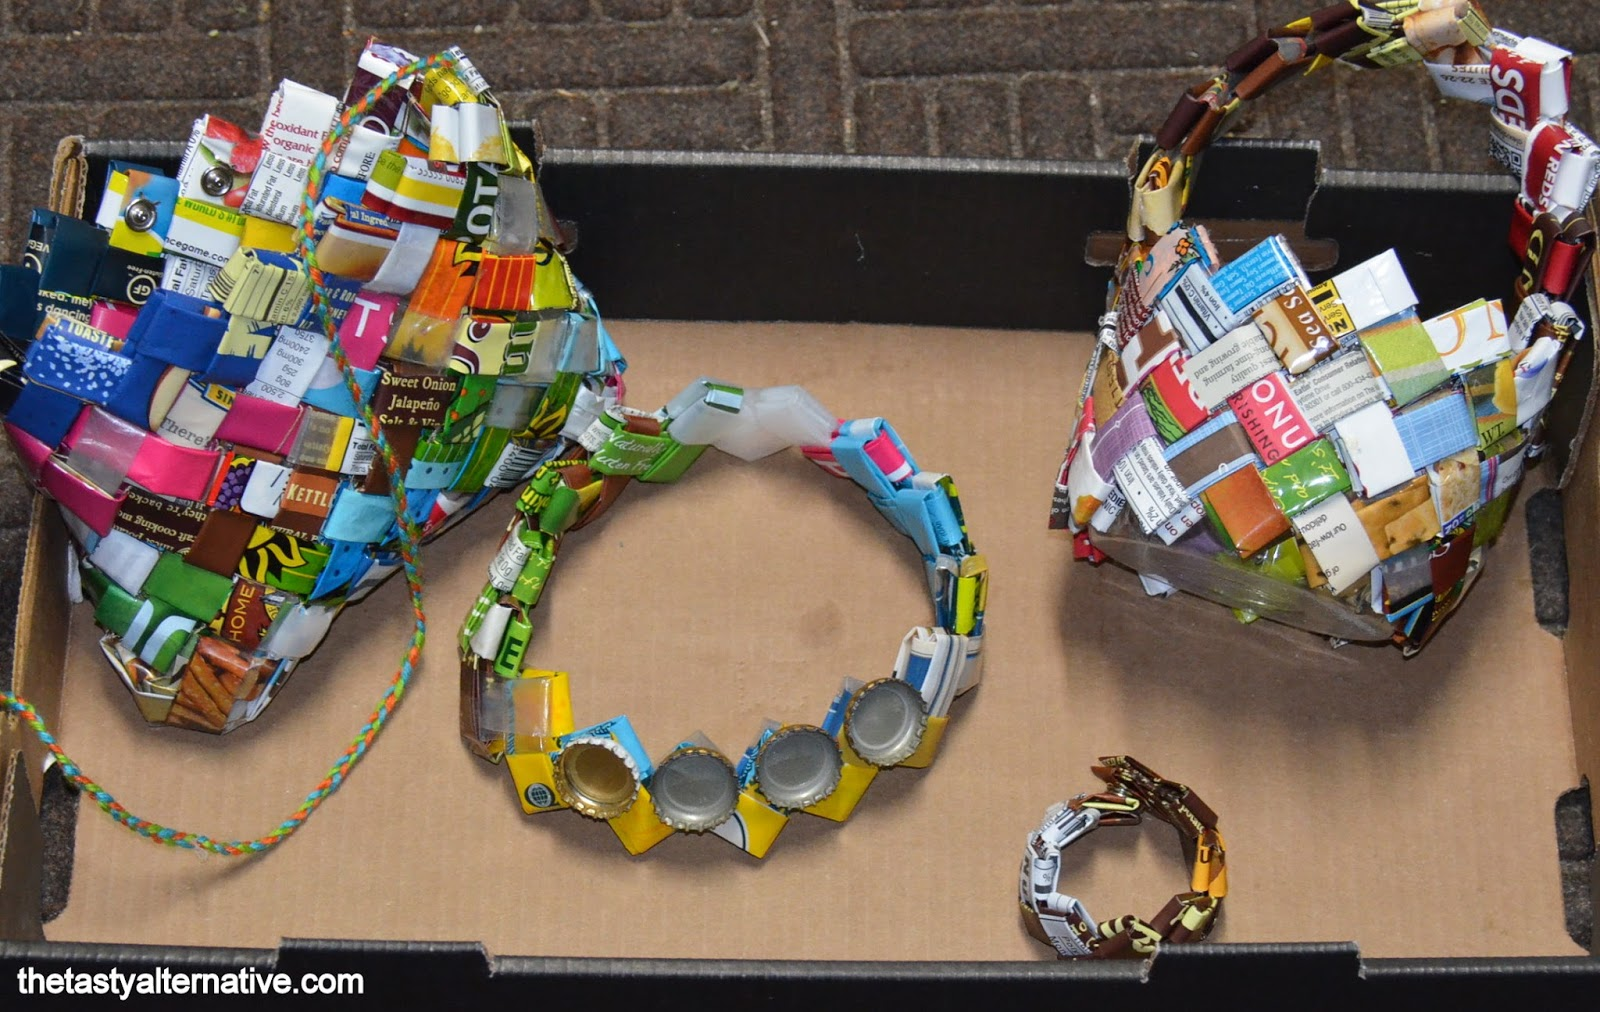 Waste material activity easy arts and crafts ideas for Waste material images